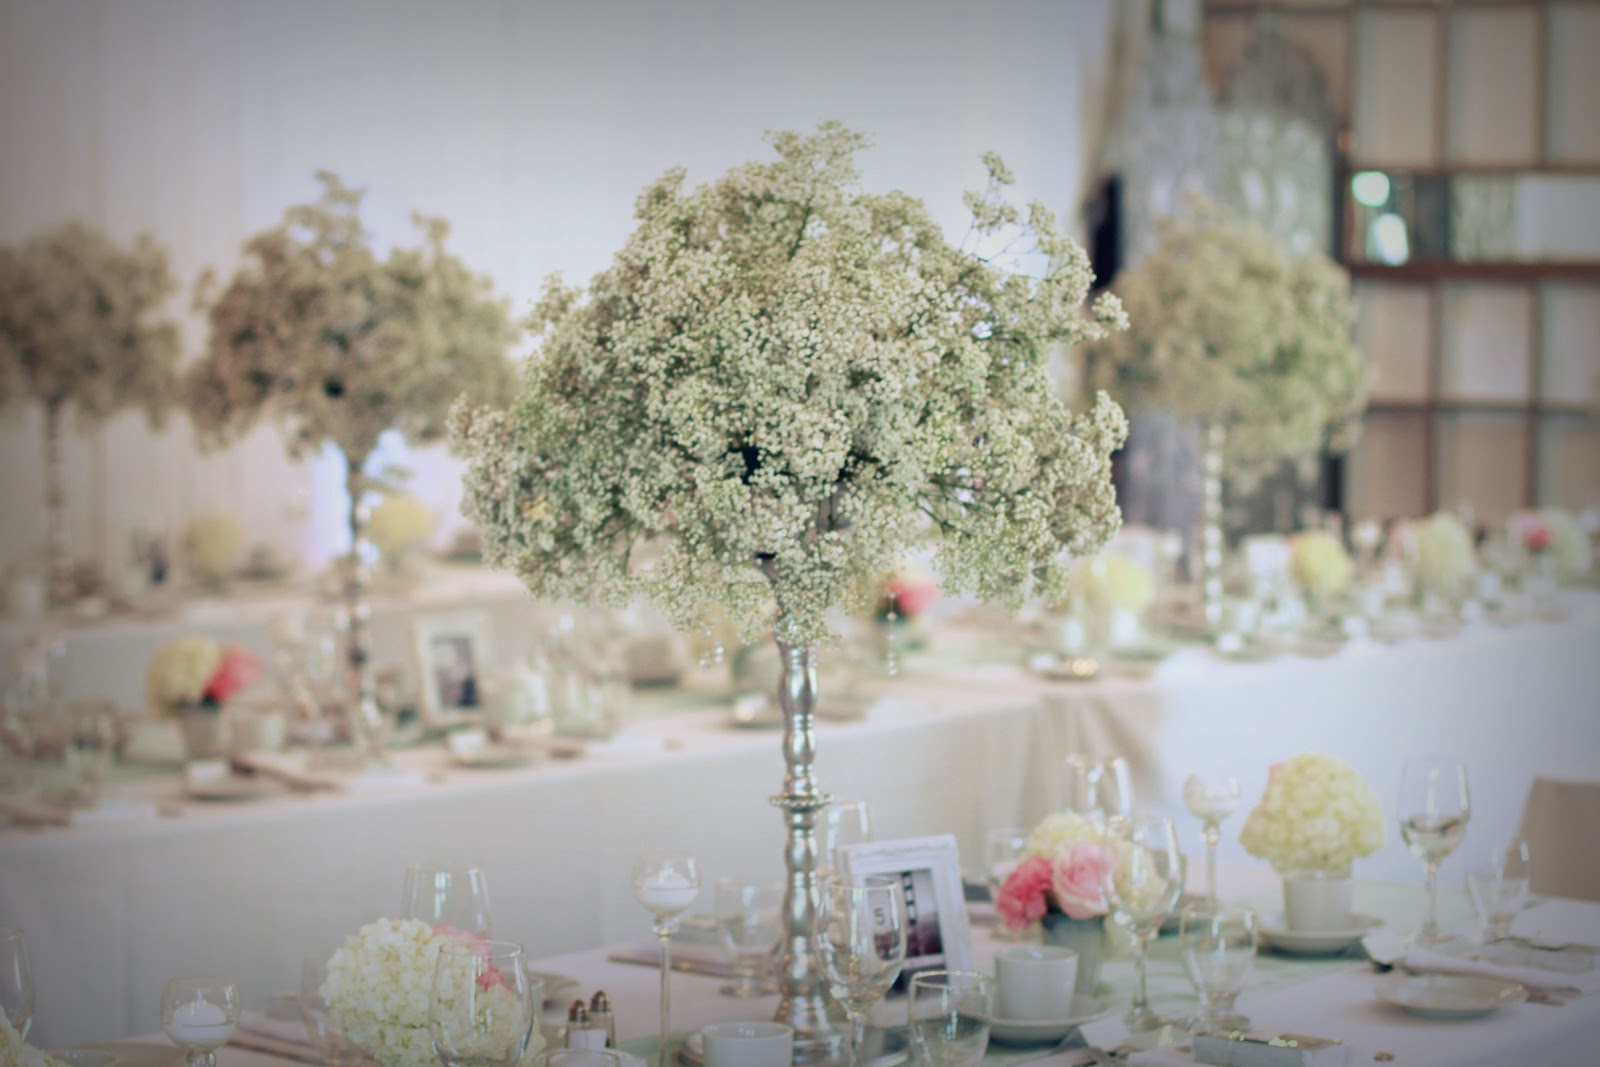 DIY Wedding Centerpieces | Harlow & Thistle - Home Design ...